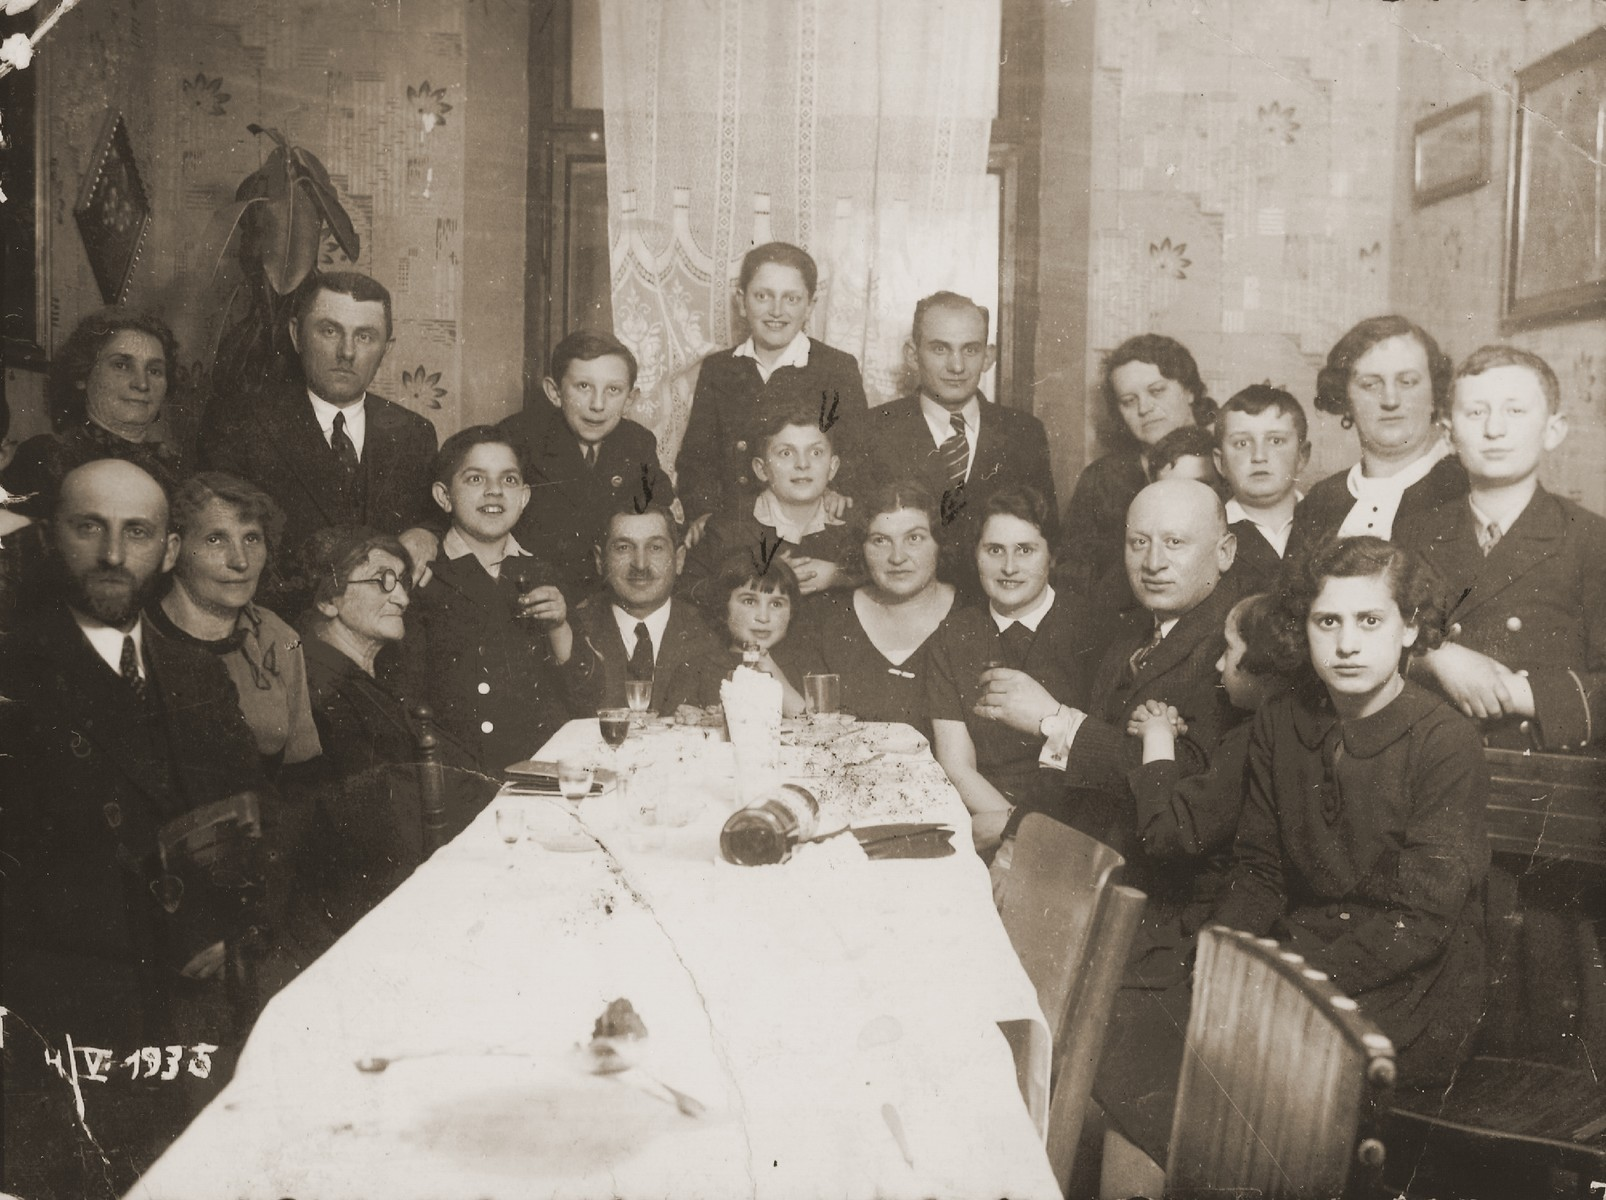 Members of the extended Hochberg family gather around a table during the celebration of the bar mitzvah of Sigmund Hochberg.    Pictured at the head of the table are Bernard and Dina Hochberg with their children Sigmund and Eugenia.  Rachel Katz is seated at the far right.  Only Eugenia and her cousin Rachel survived the war.    The donor, Eugenia Hochberg (b. November 27, 1928), is the daughter of Bernard and Diana Harmelin Hochberg of Brody, Poland.  She had one brother, Sigmund (b. 1922).  Her father earned his living as a grain shipper.  Eugenia attended a private non-religious Jewish school in Brody.  After the German invasion and the repartition of Poland in the fall of 1939, Brody came under Soviet occupation.  For two years the Hochbergs remained in their home, but were compelled to share their living quarters with other Jewish families.  No longer permitted to run his own business, Bernard was forced to take work as a night watchman.  In June 1941, following the German invasion of the Soviet Union, Brody fell under Nazi domination.  On November 27, 1941 Bernard was deported to a labor/concentration camp in Zborow, where he remained for five months until his wife could purchase his freedom and bring him home.  The Hochbergs relocated to the ghetto after its establishment in the winter of 1942.  During this period Eugenia was sent for forced labor to various sites outside the ghetto.  She also performed secretarial tasks in the offices of the Judenrat.  The family was rounded-up during the final liquidation of the Brody ghetto on May 21, 1943.  While on the deportation train to Majdanek, Eugenia's parents forced her to jump off before they reached their destination.  Eugenia was found semi-conscious by Polish peasants who stole her clothing and were about to take her to the police, when a railway worker appeared and insisted on taking her himself.  Instead of turning her in, however, he offered her temporary shelter and found clothes for her to wear.  Eugenia found her way back to Brody, where she smuggled herself into the forced labor camp.  Several weeks later she smuggled herself back out and found refuge with a Polish woman, who harbored other Jews for payment.  Eugenia narrowly escaped capture by the Gestapo during a raid of her place of refuge in February 1944.  Though she was able to find a Russian woman to take her in, Eugenia had to spend the last six weeks of the war concealed in a hole under the woman's bed.  Following her liberation in March 1944, Eugenia lived for a time in Brody and Lublin.  She married Henryk Lanceter in July 1945, and five months later left for Germany.  The couple took up residence in the Finkenschlag DP camp in Fuerth, where their daughter was born.  In the summer of 1949 the family emigrated to the United States, sailing aboard the SS General Holbrook to Boston.